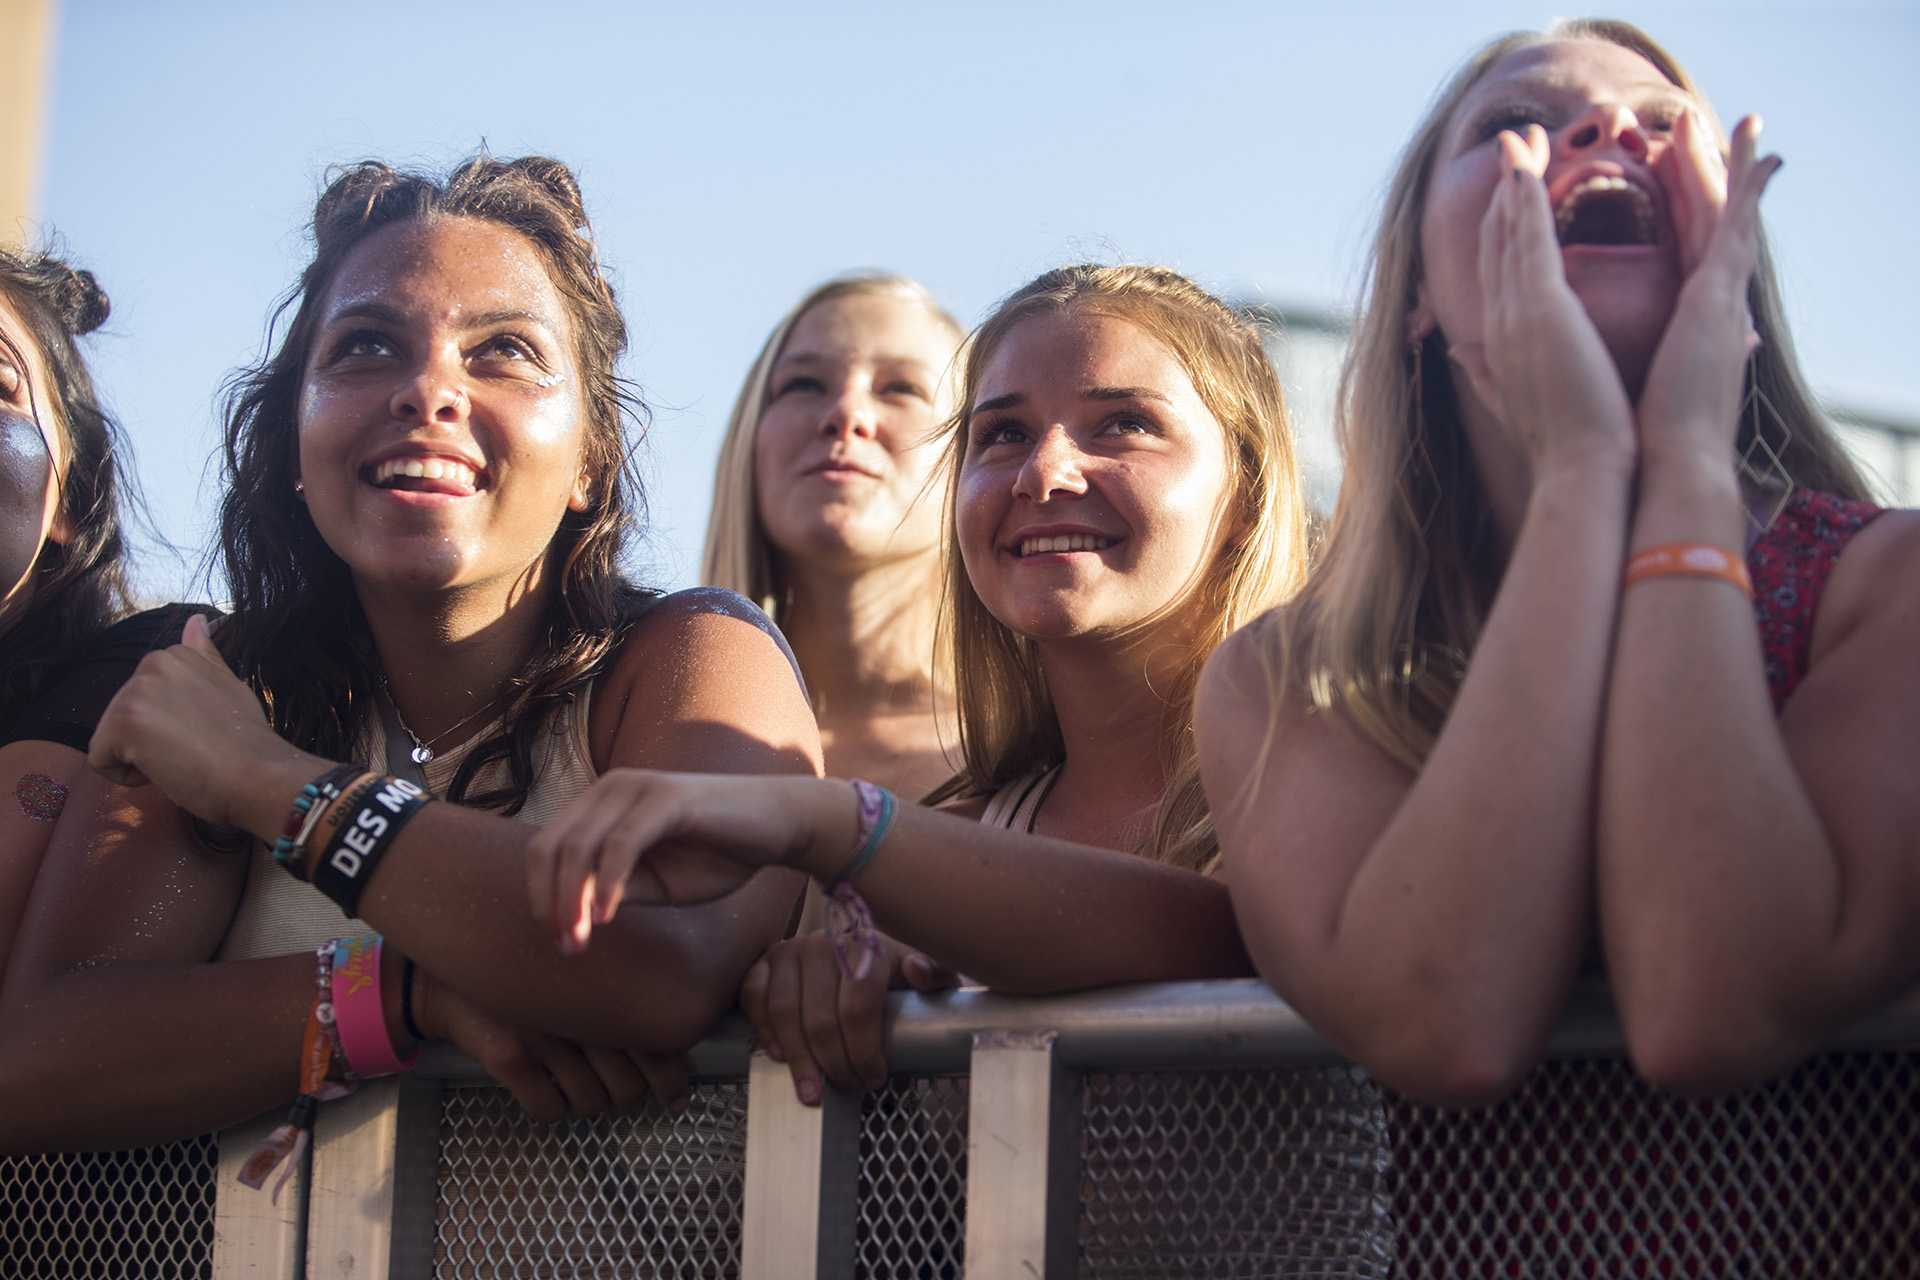 Fans cheer as Courtney Barnett occupies the Hy-Vee Main stage on Saturday, July 7, 2018. (Thomas A. Stewart/The Daily Iowan)